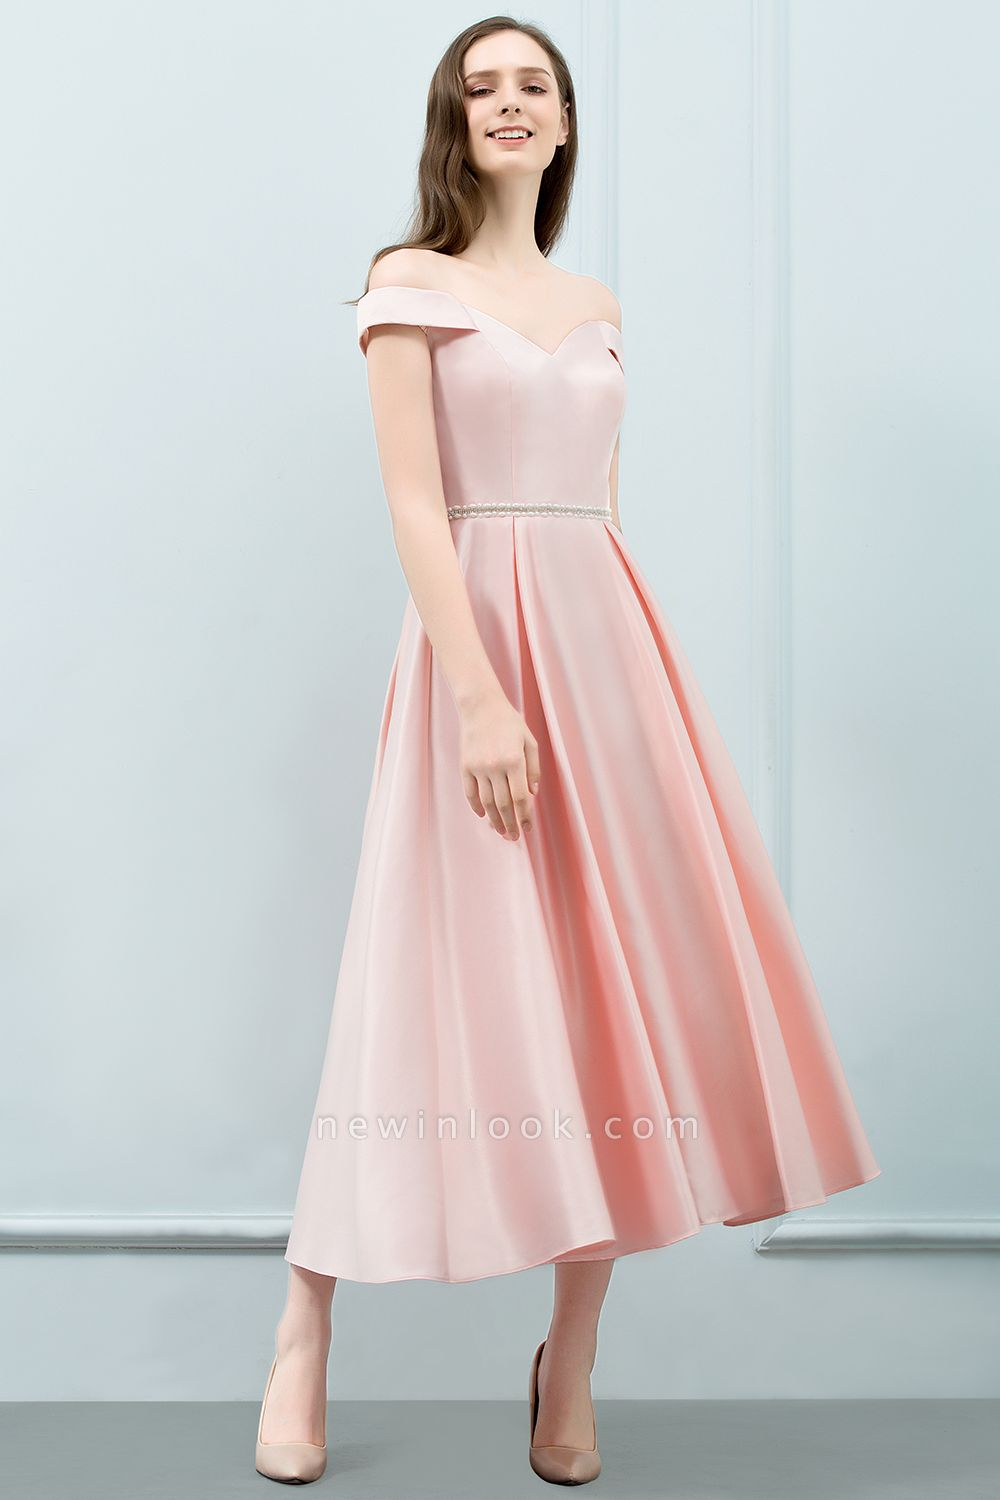 SHEILA | Quinceanera Off-shoulder Tea Length Pink Dama Dresses with Sash